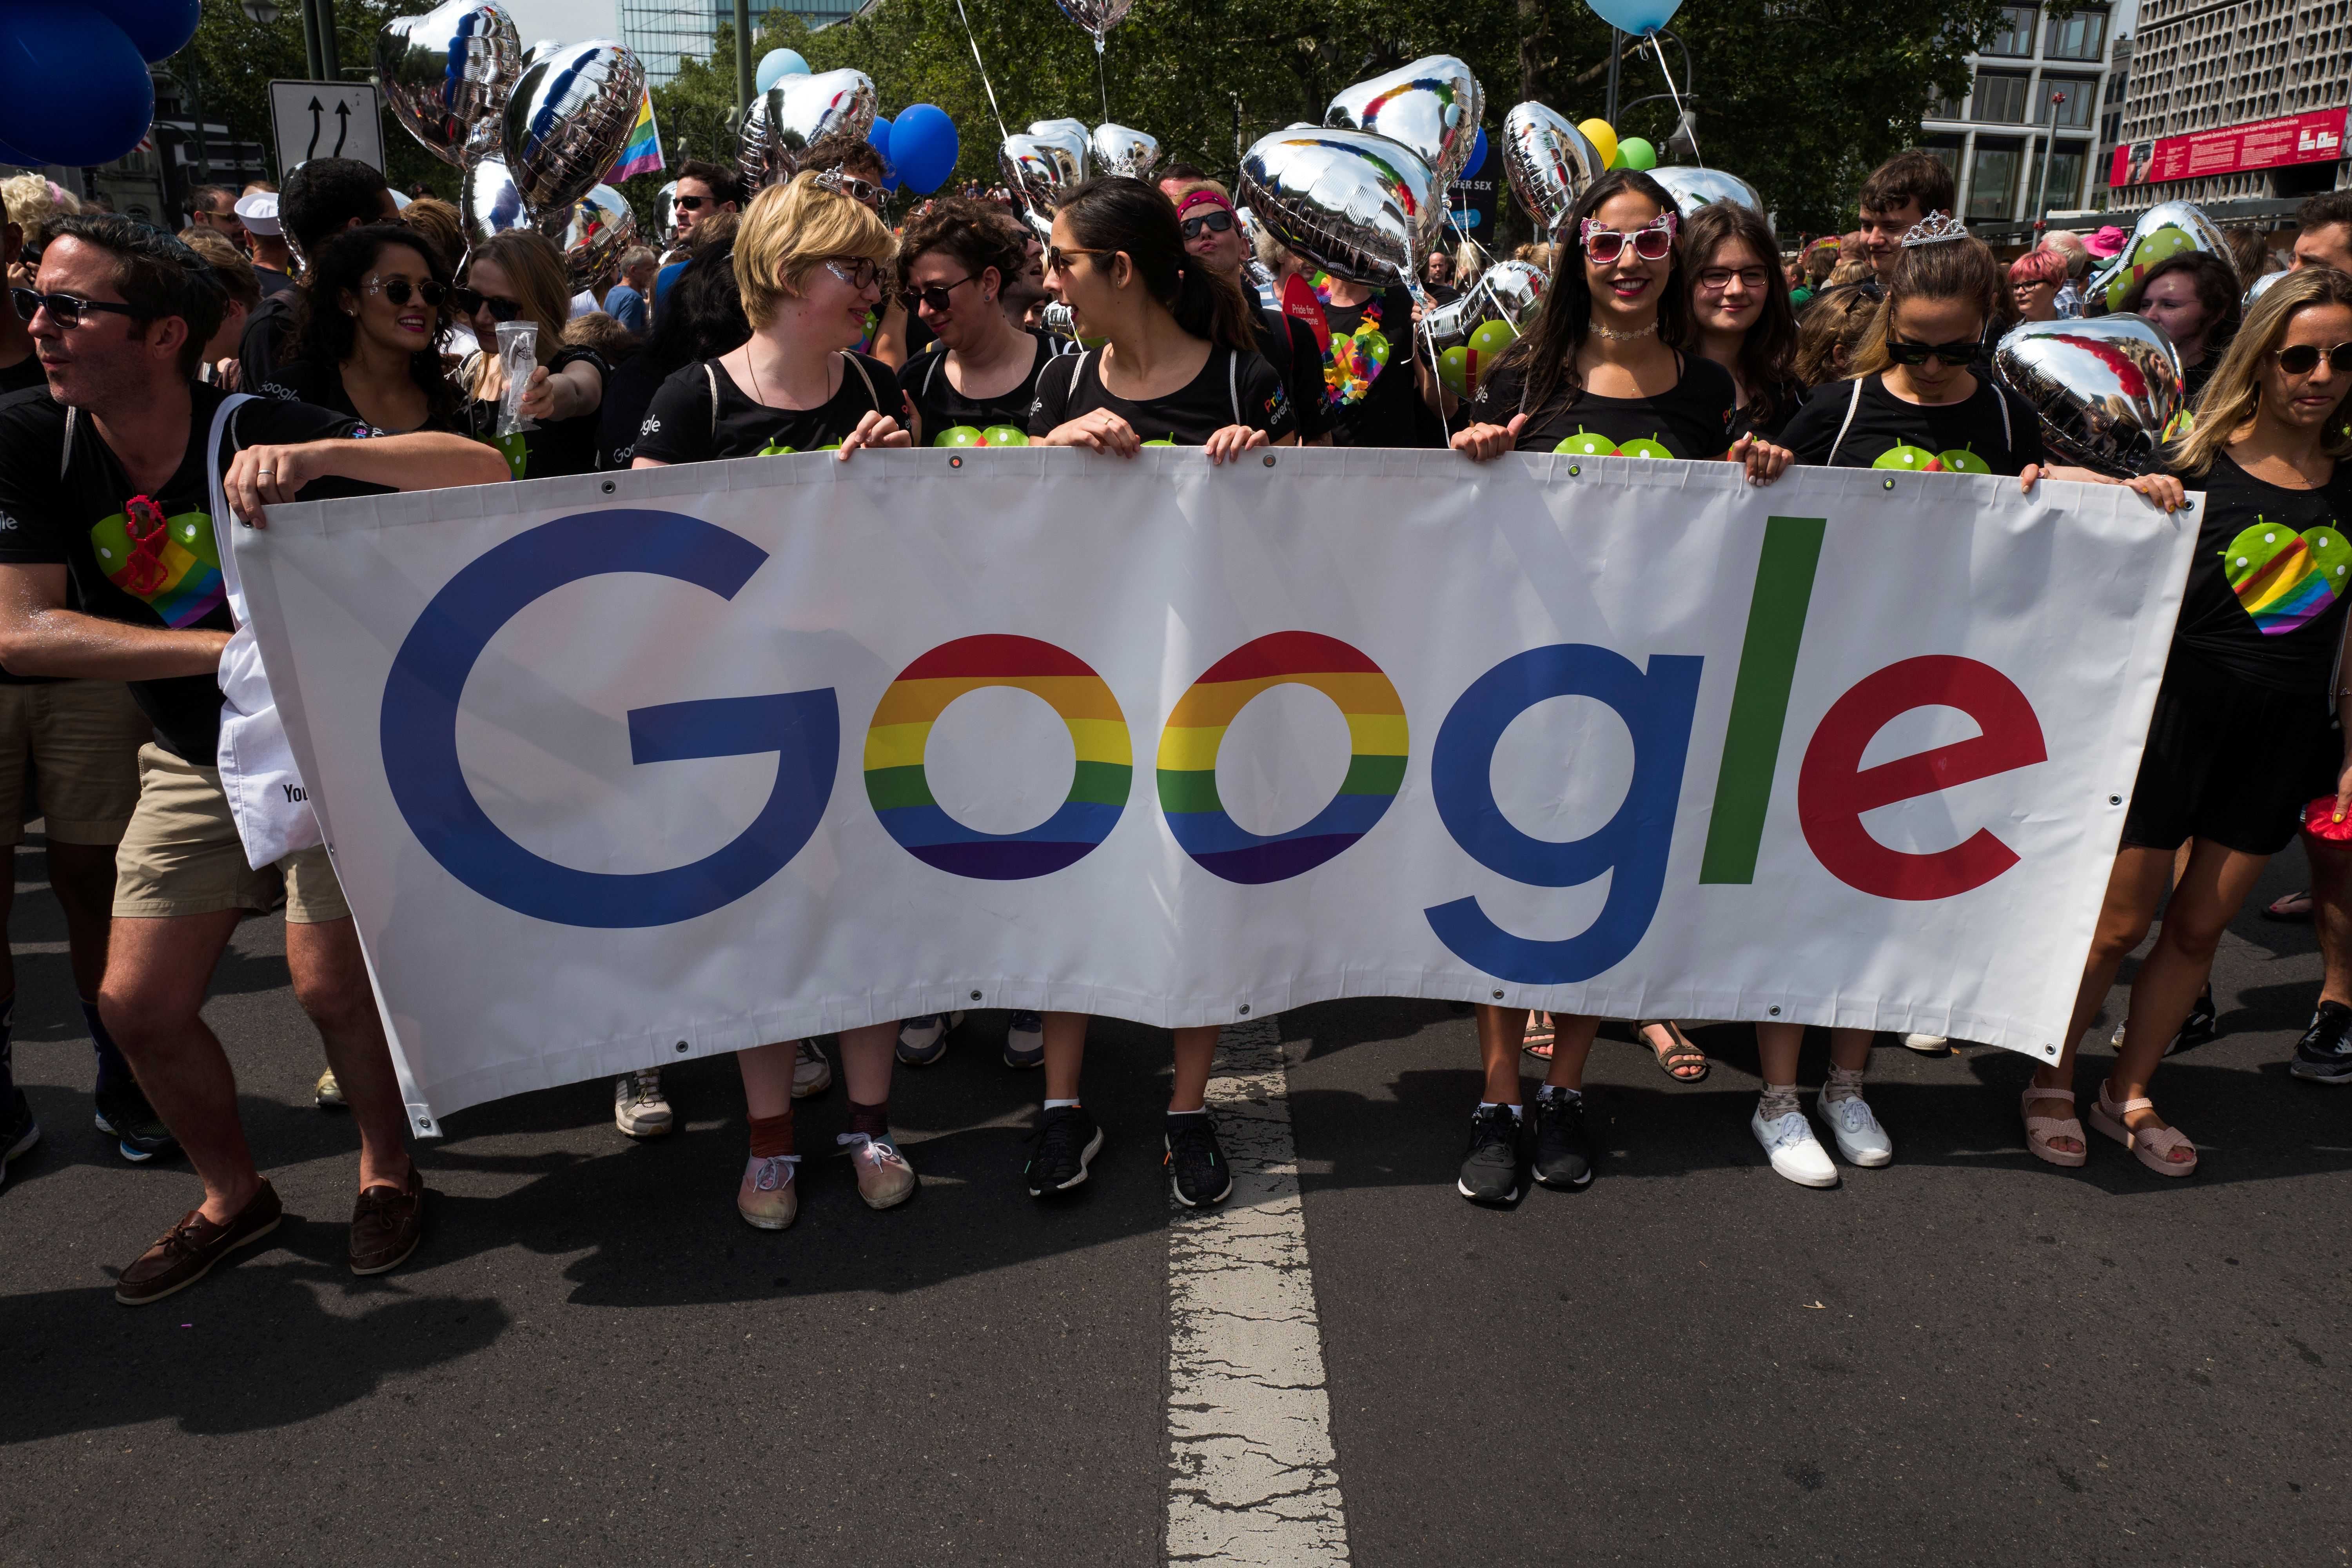 Google banner at Berlin's annual Christopher Street Day LGBT+ pride parade